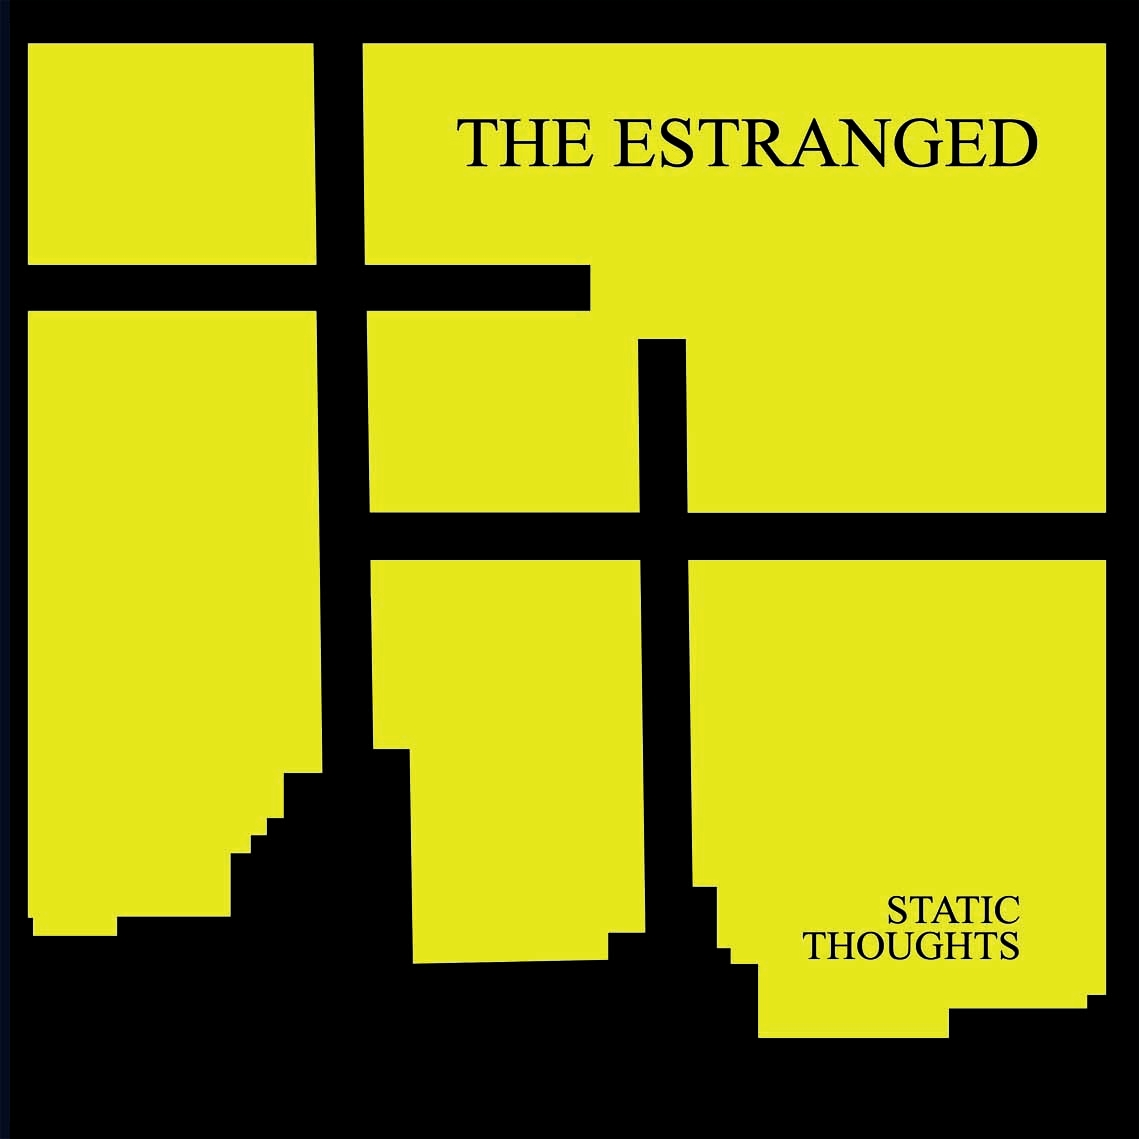 The Estranged Static Thoughts